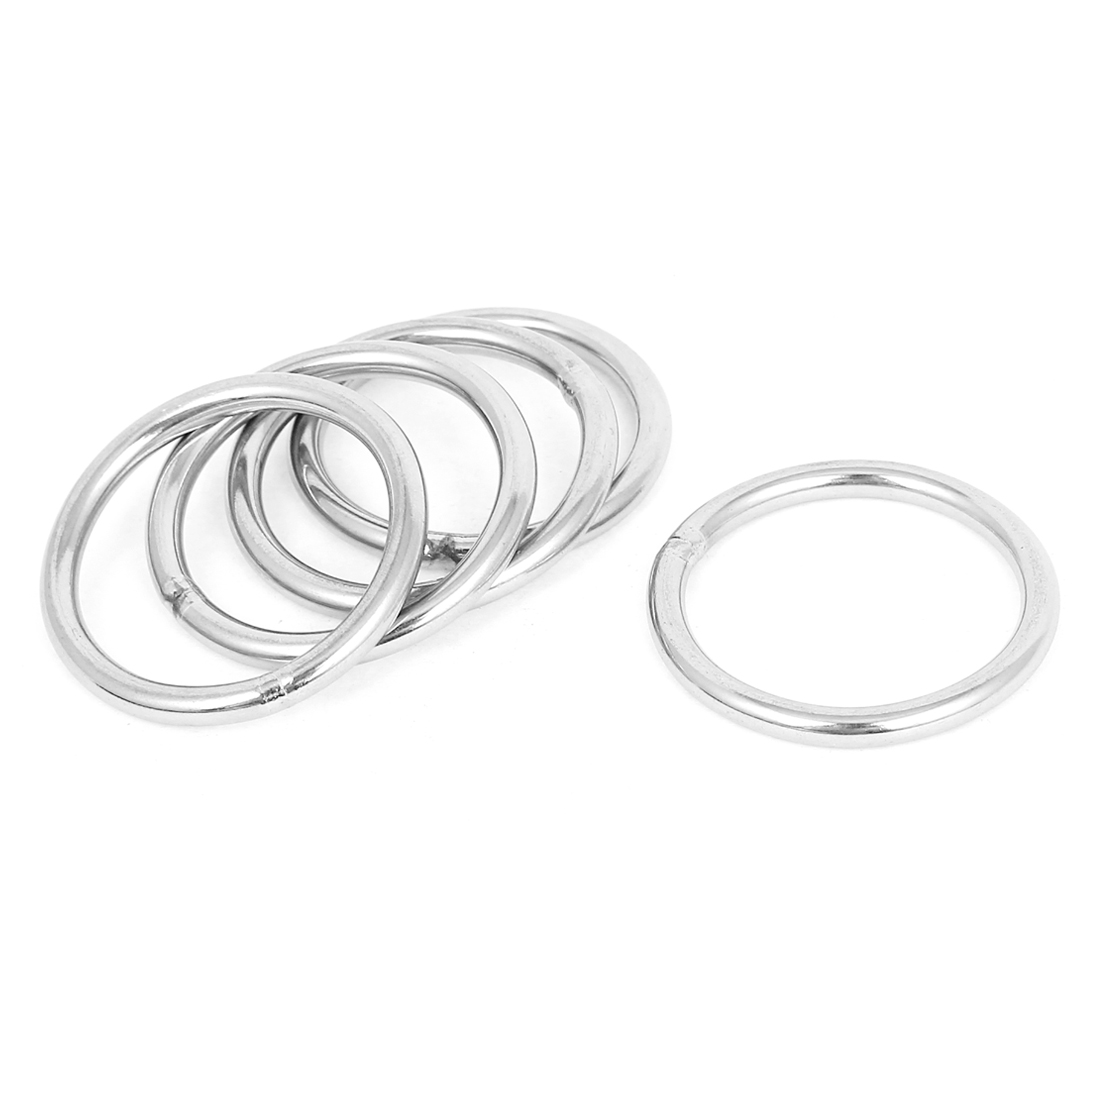 40mm x 4mm Stainless Steel Webbing Strapping Welded O Rings 5 Pcs